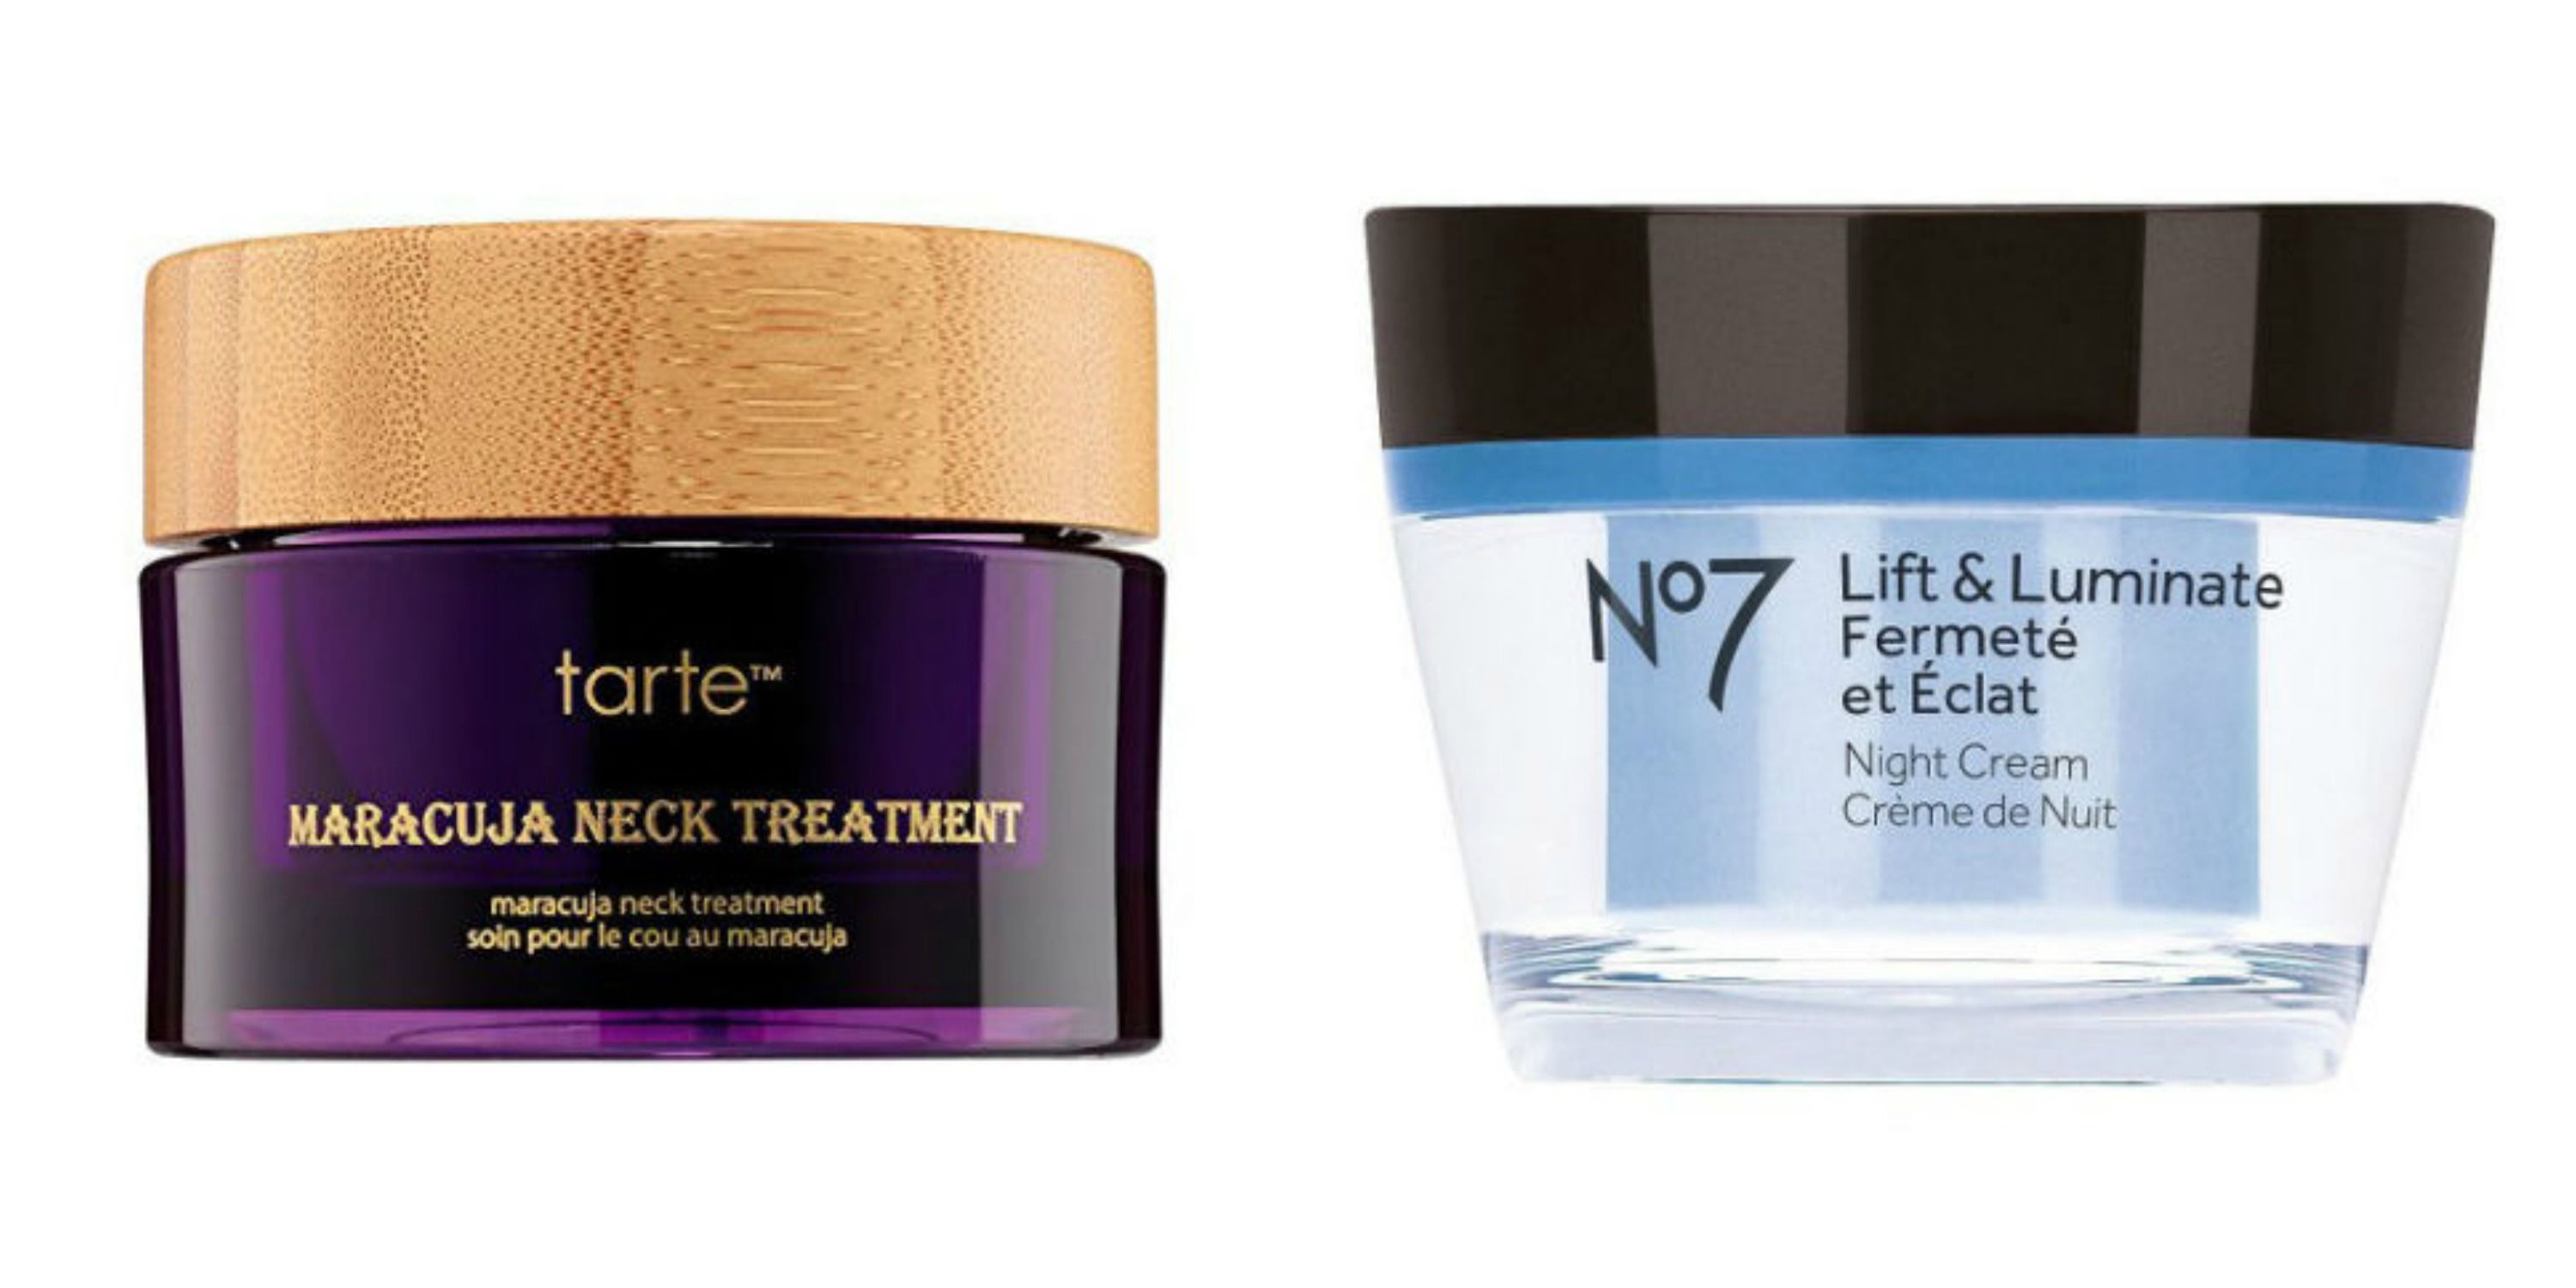 Discussion on this topic: 7 Best Neck Creams for Firmer, Younger-Looking , 7-best-neck-creams-for-firmer-younger-looking/